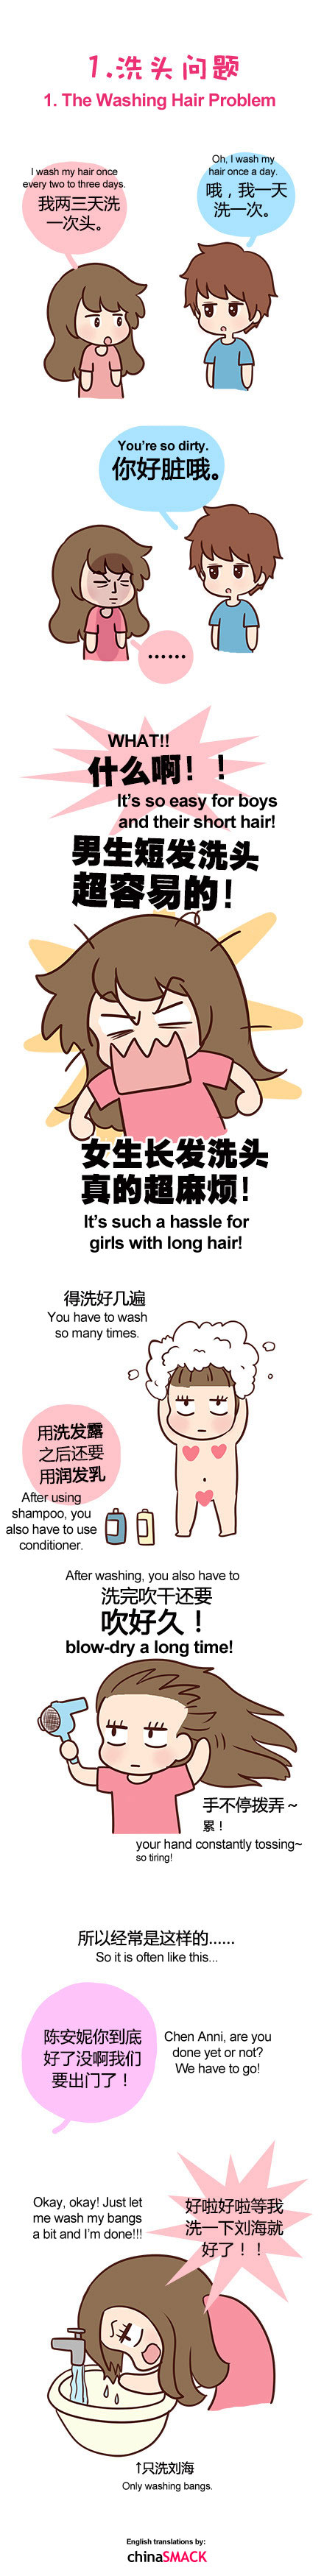 chinese-weibo-greatanny-hair-troubles-annoyances-for-women-01-english-translation